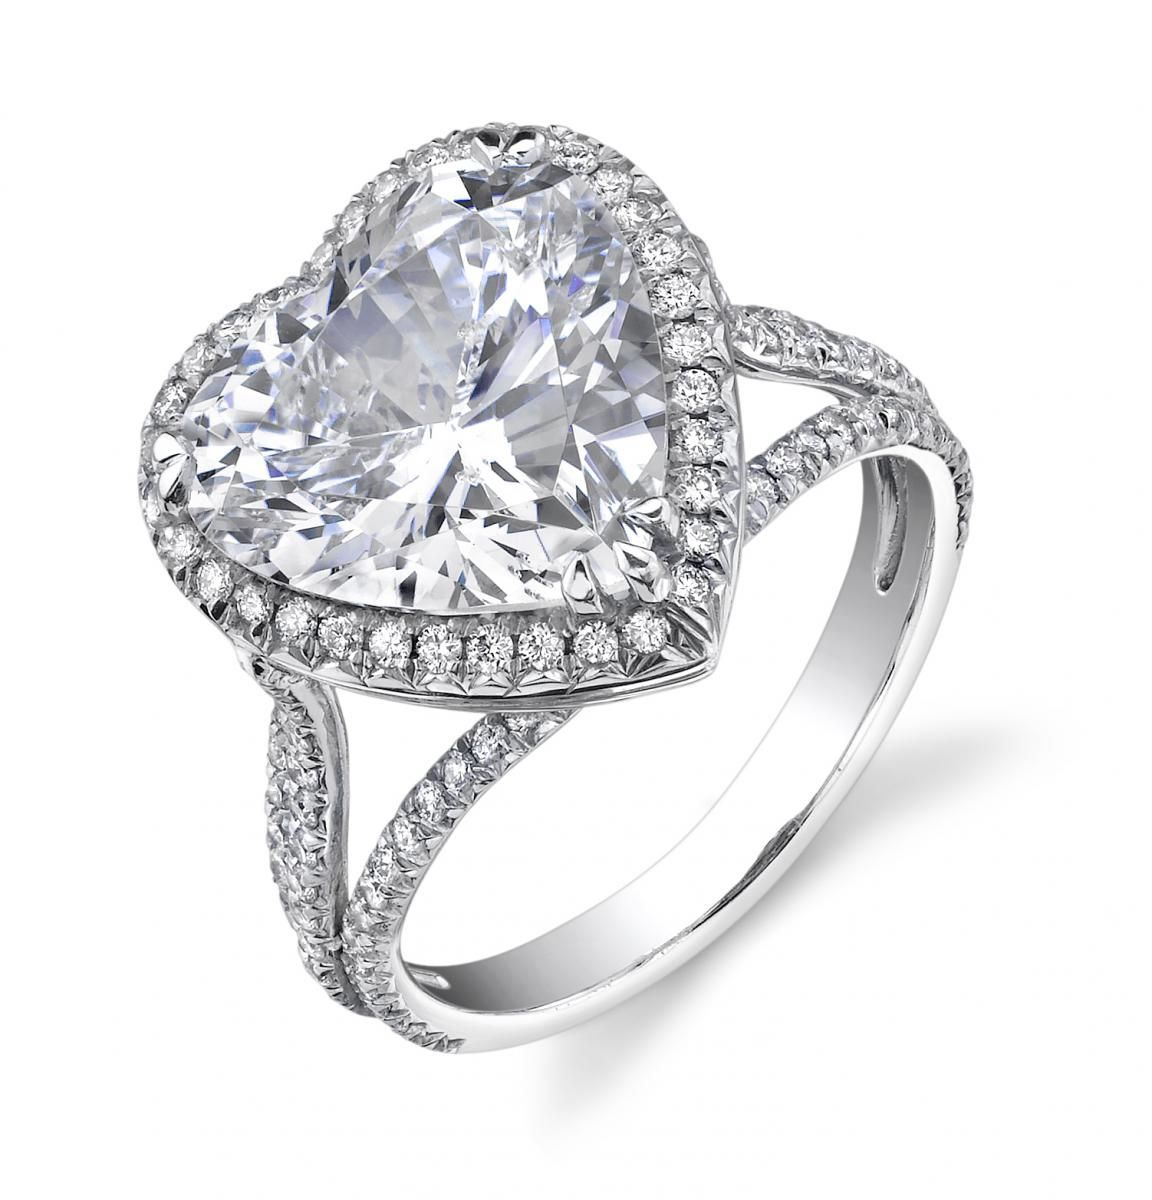 7 creative ideas for custom engagement rings engagement